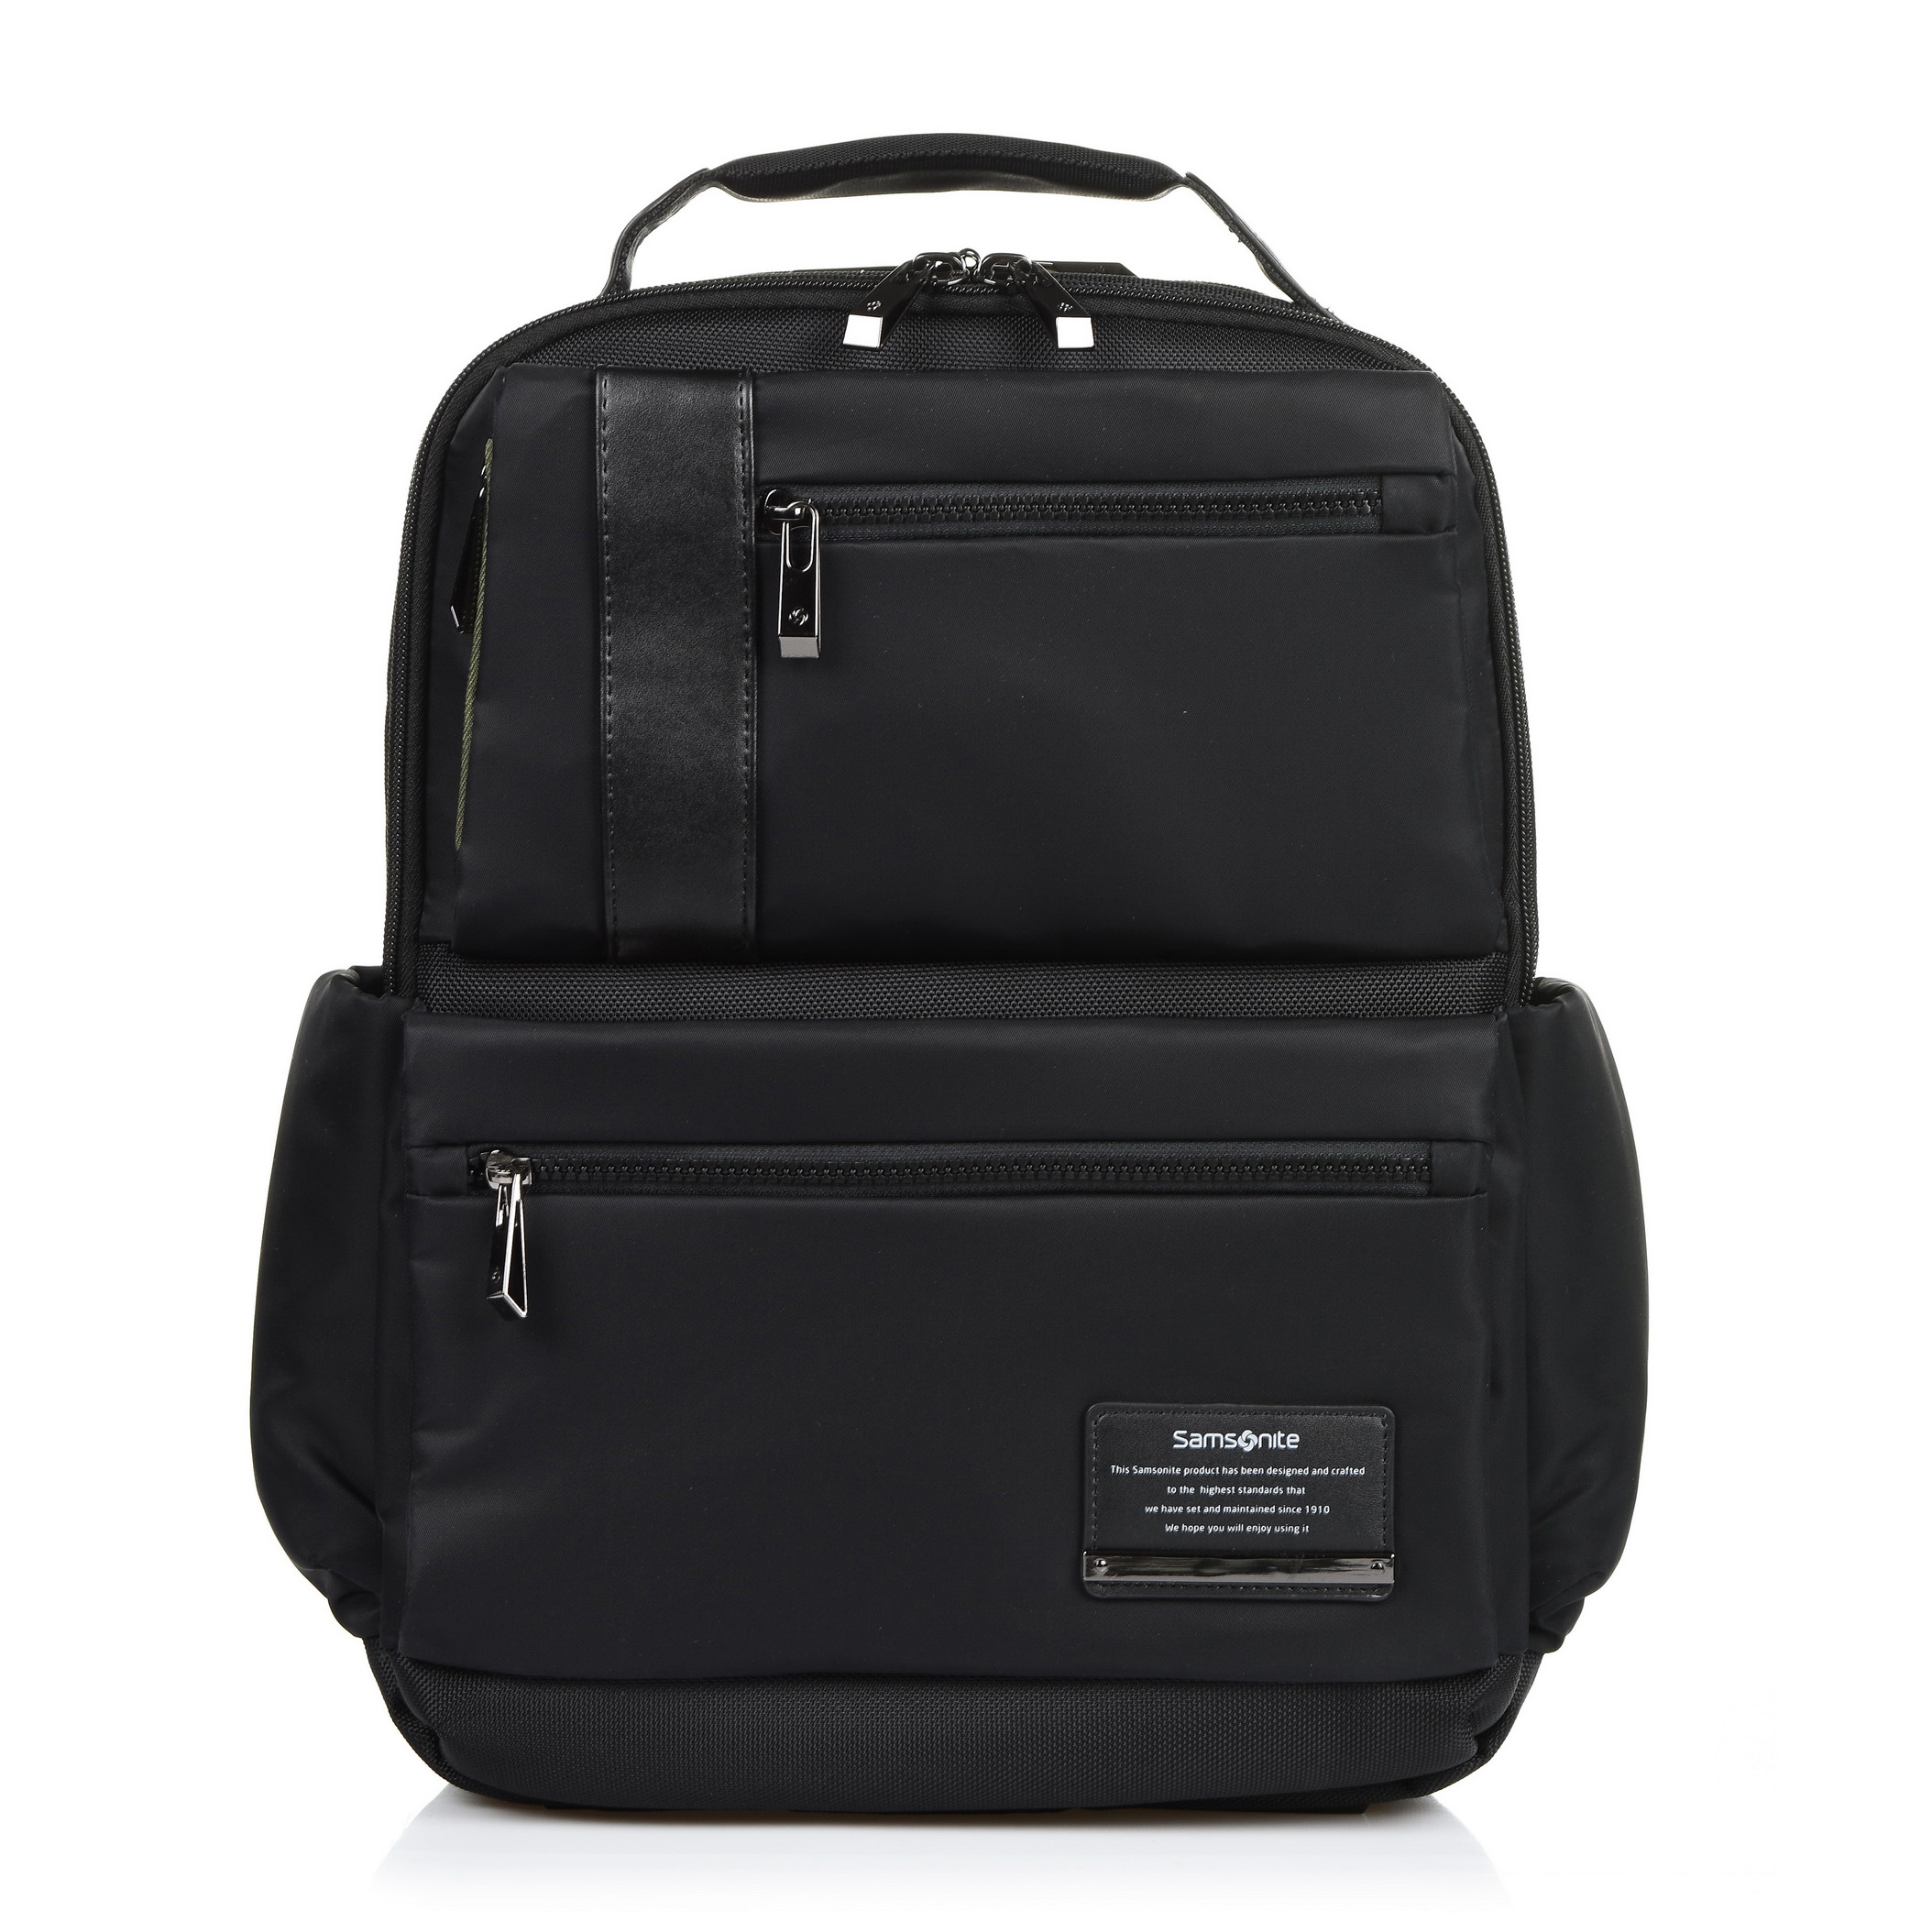 650e0e77ae Σακίδιο Πλάτης Samsonite Openroad Laptop Backpack 14.1   77707 ...